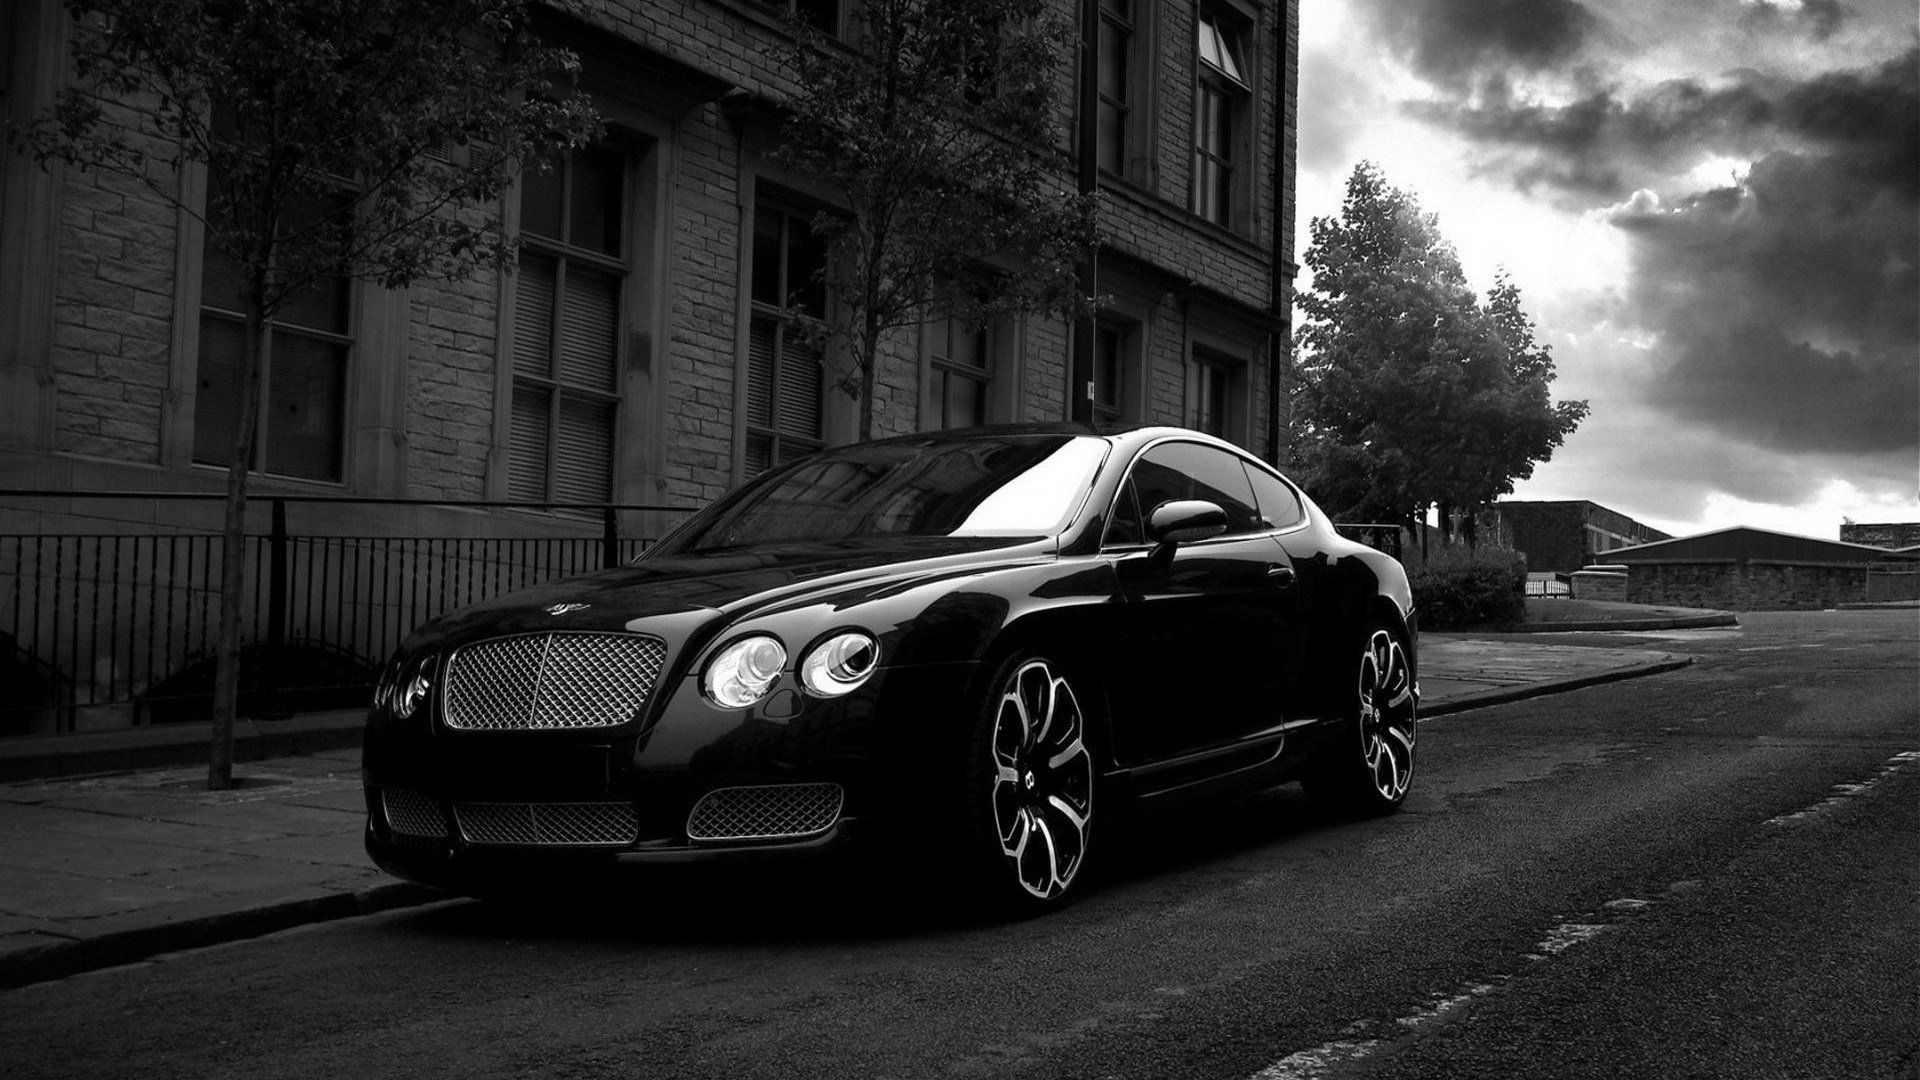 Latest Bentley Wallpapers Wallpapers High Quality Download Free Free Download